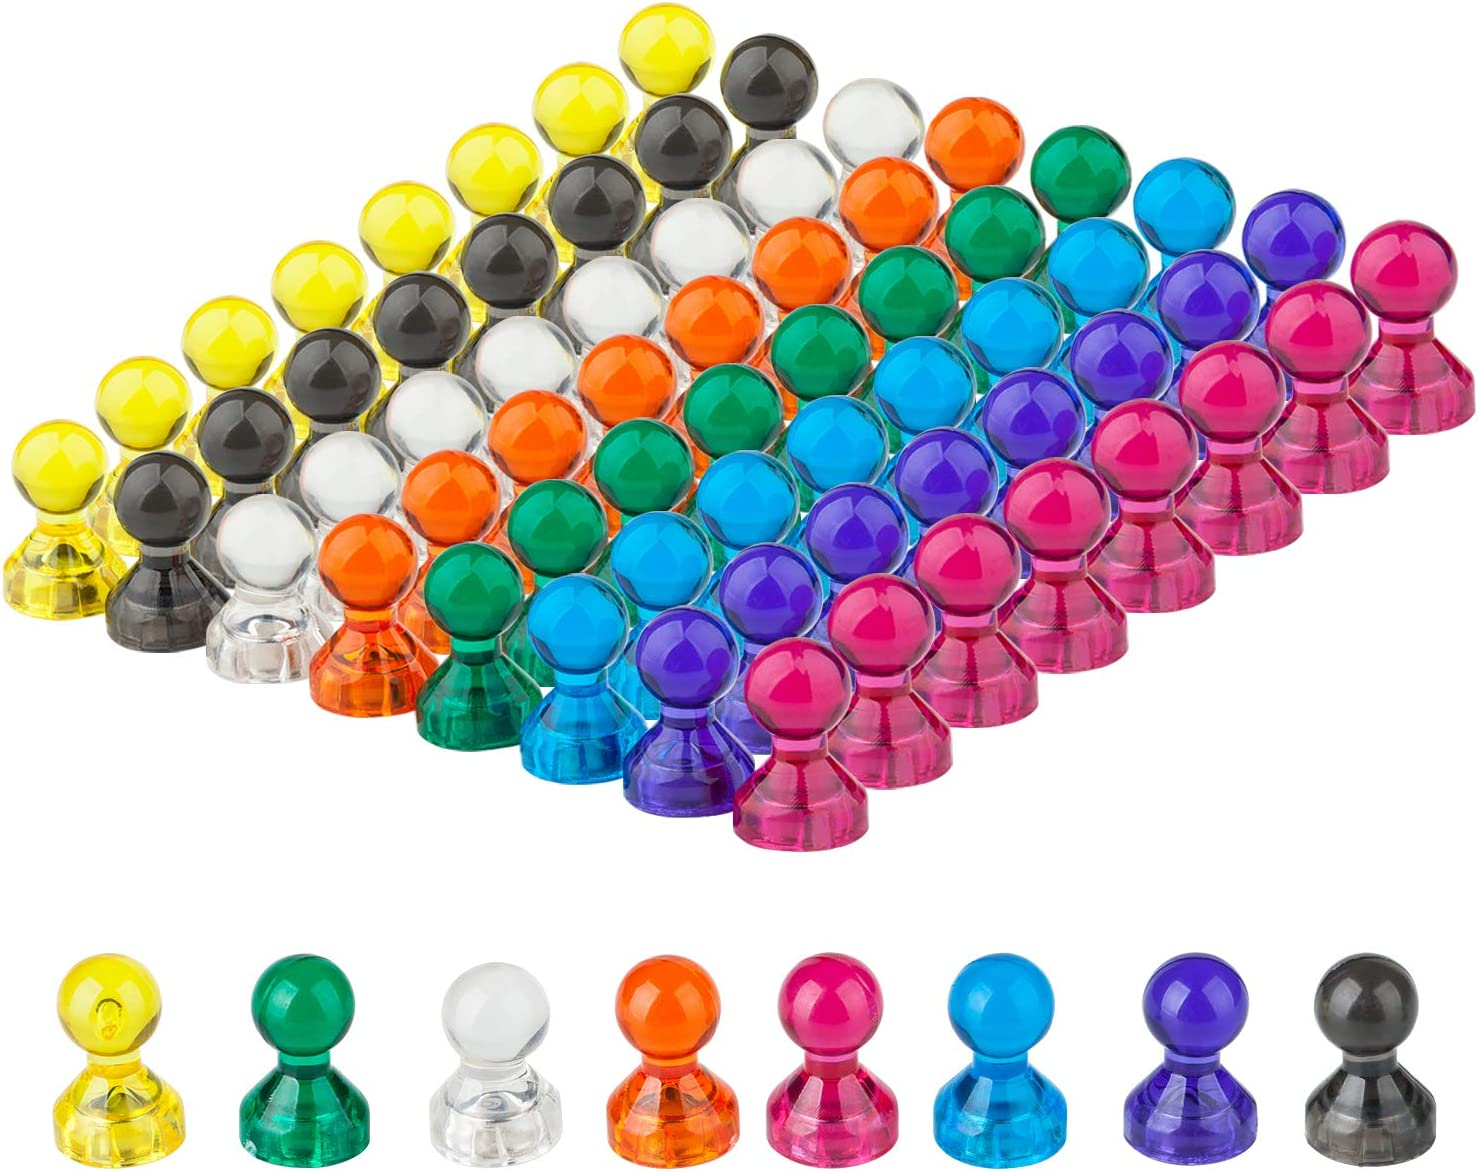 Push Pin Magnets, Refrigerator Magnets, 8 Assorted Colors 64 Bulk Pack Magnetic Push Pins For Home, School, Classroom and Office, Use for Fridge Calendar Map Whiteboard Magnets